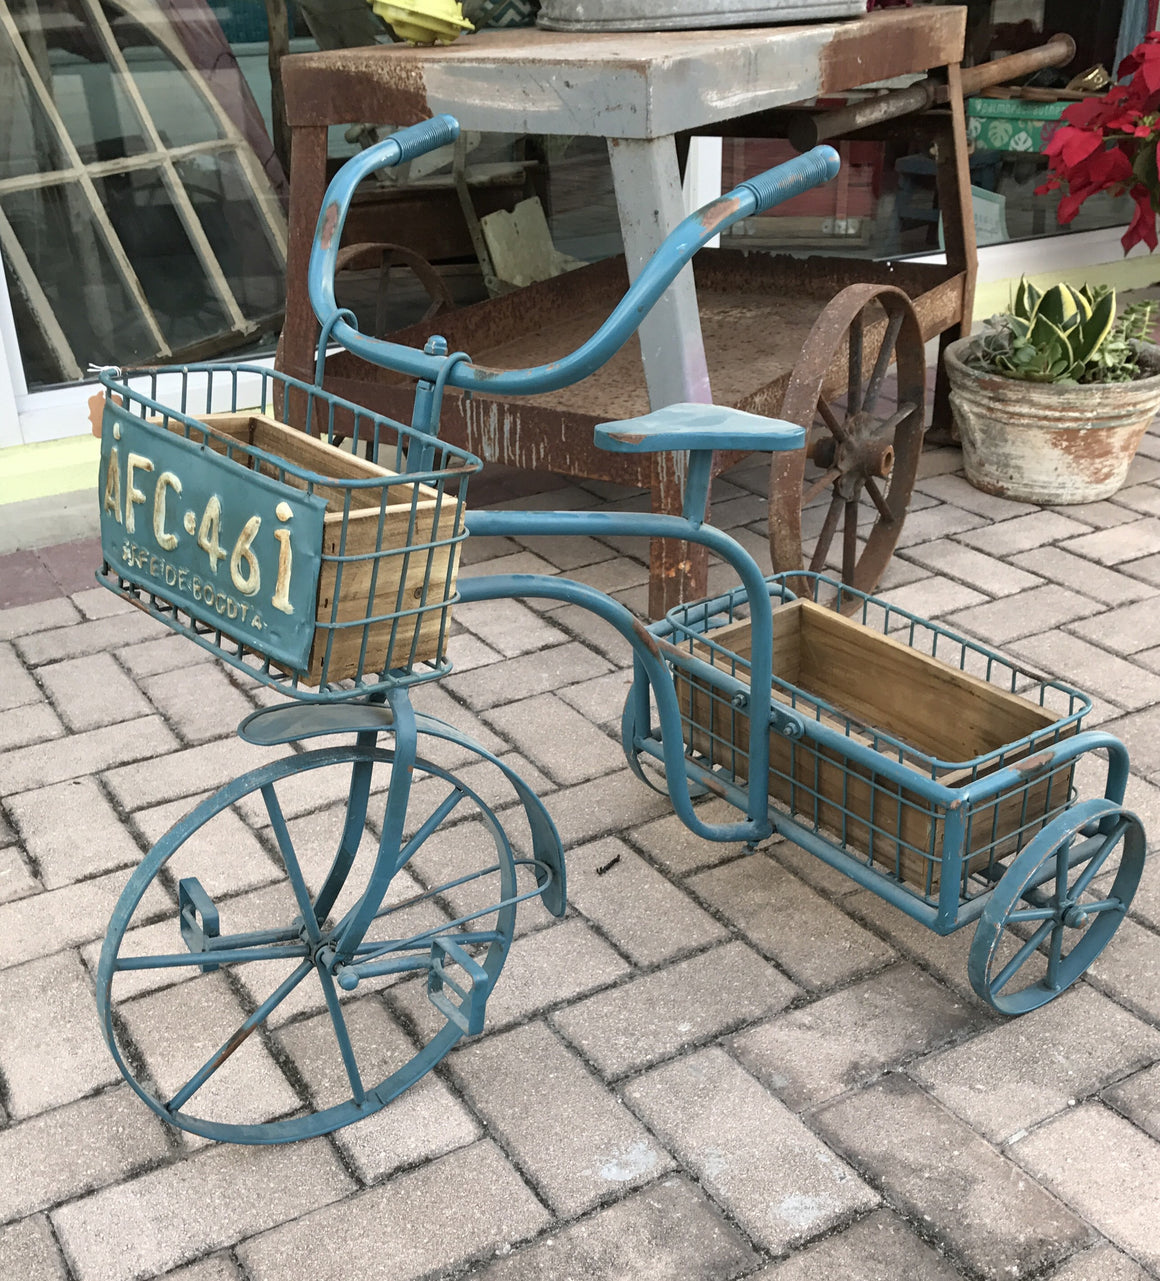 Vintage Look Tricycle - VINTAGE JOURNEY MARKET - Upcycling & Restoration